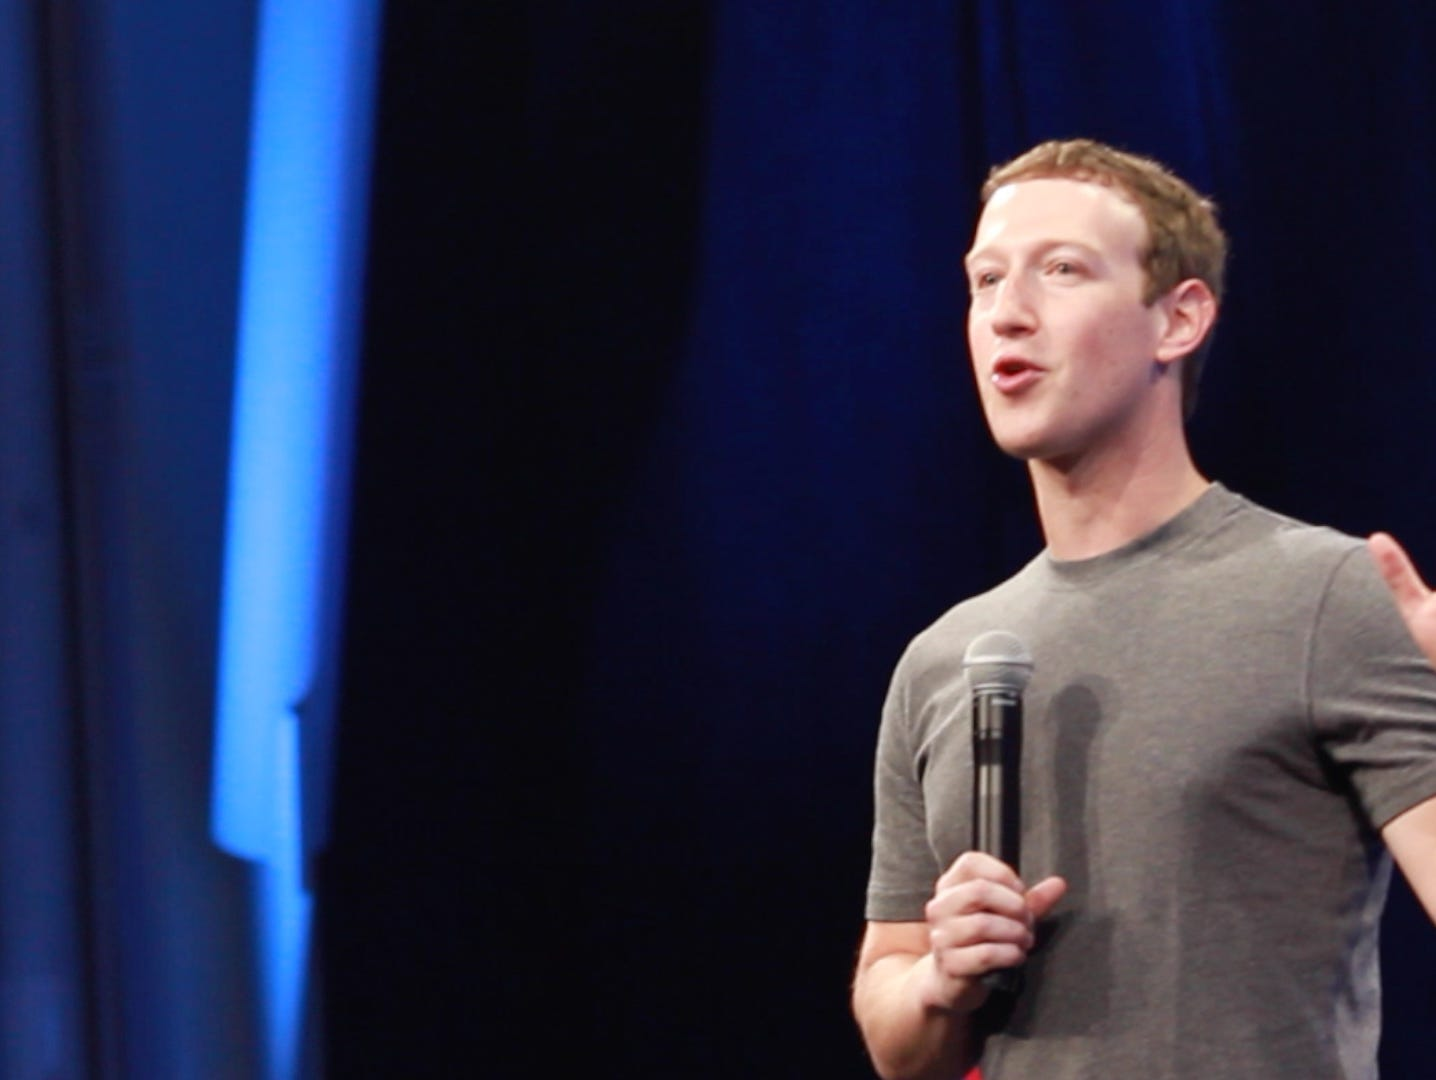 Mark Zuckerberg on stage at the F8 developers conference in San Francisco, Calif., March 25, 2015.